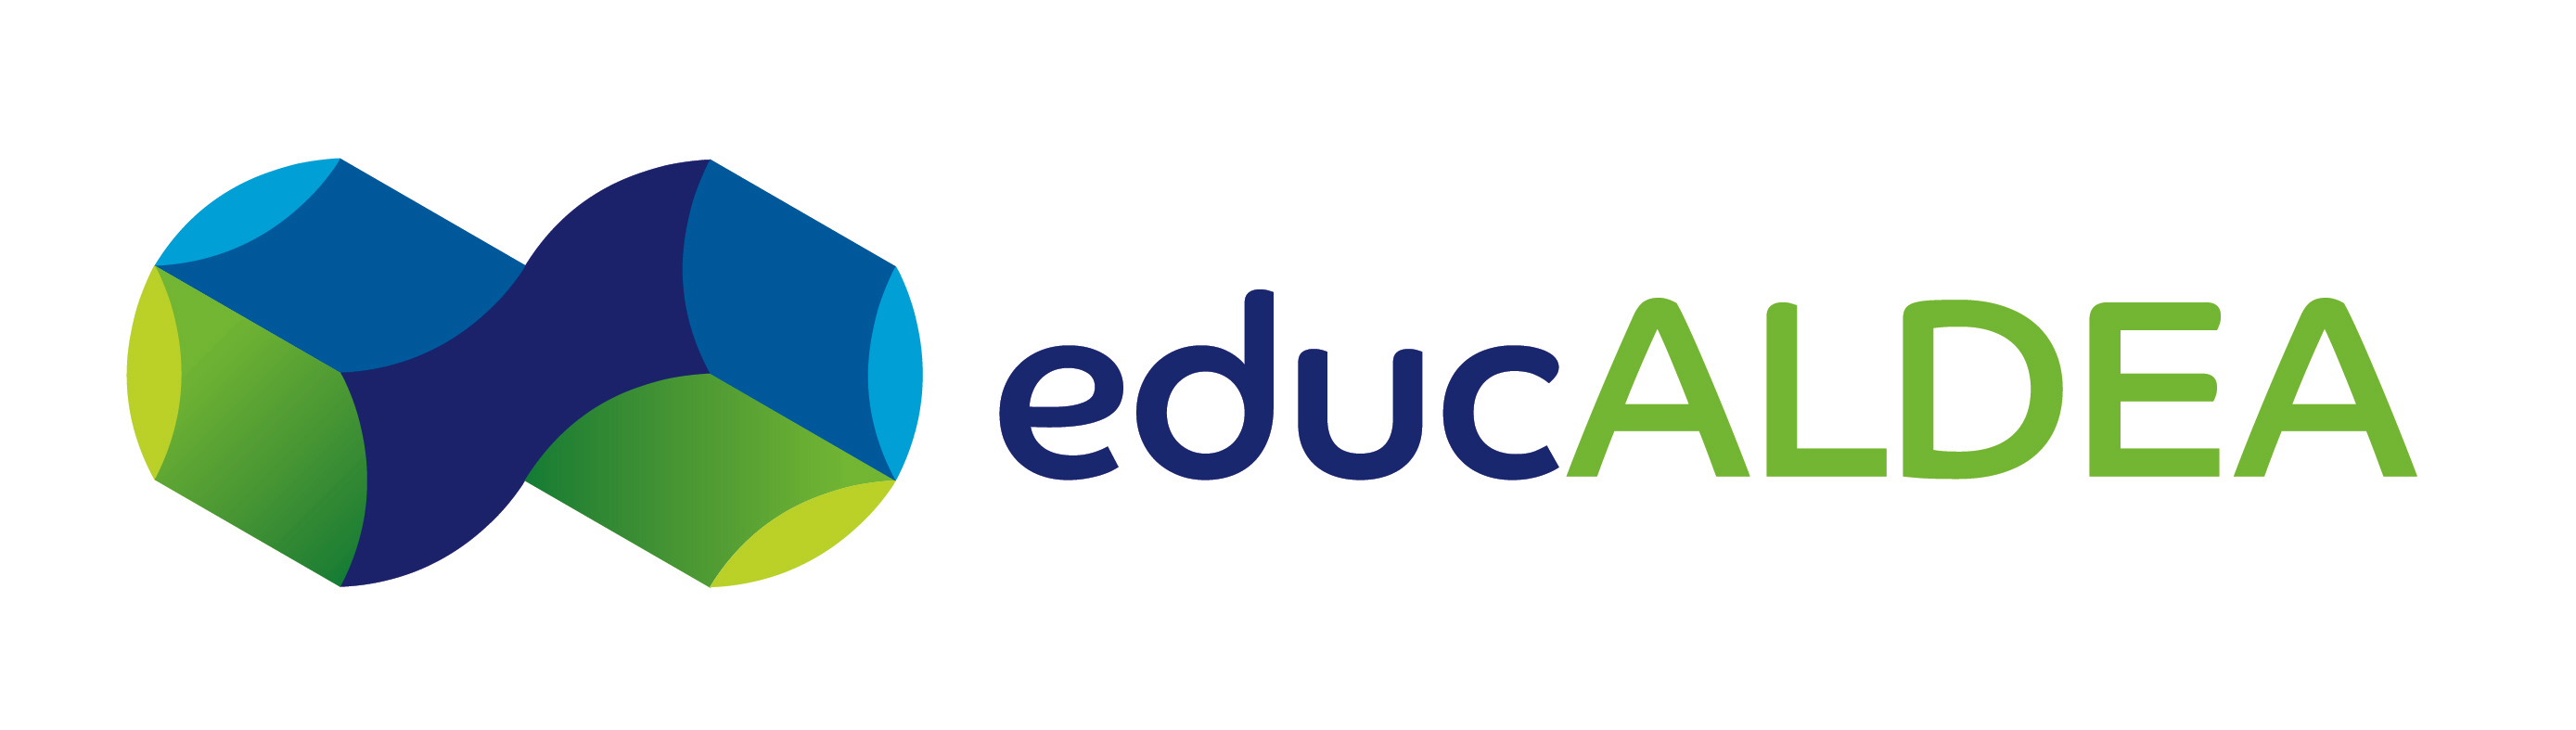 educALDEA_Color